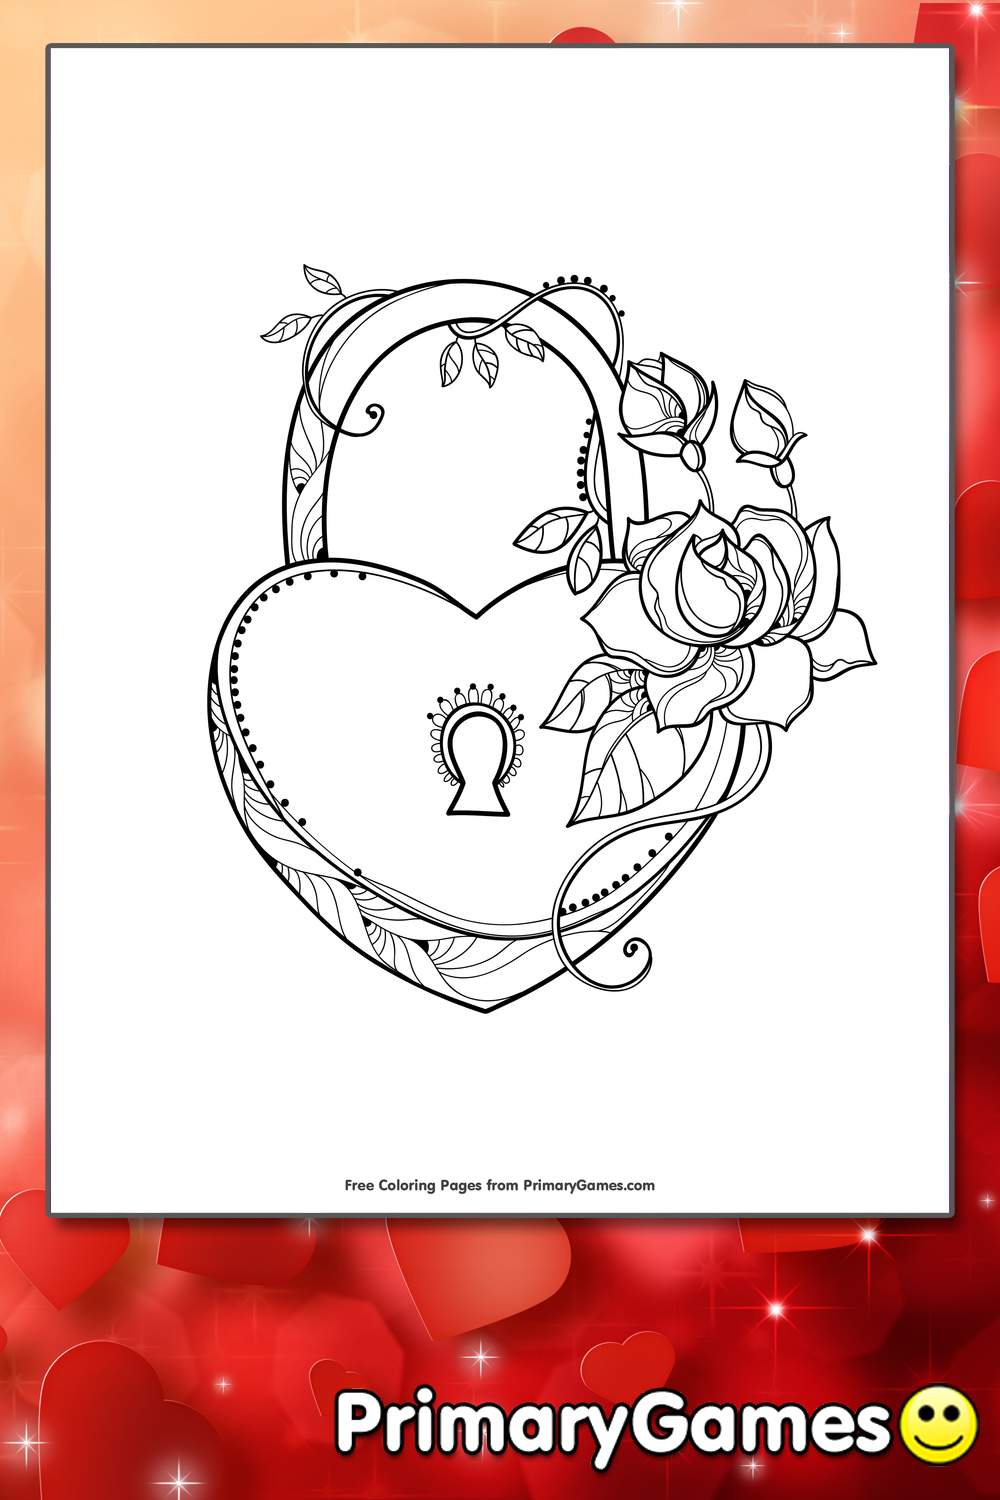 Falling Tower Coloring Page - Free Italy Coloring Pages ...   1500x1000